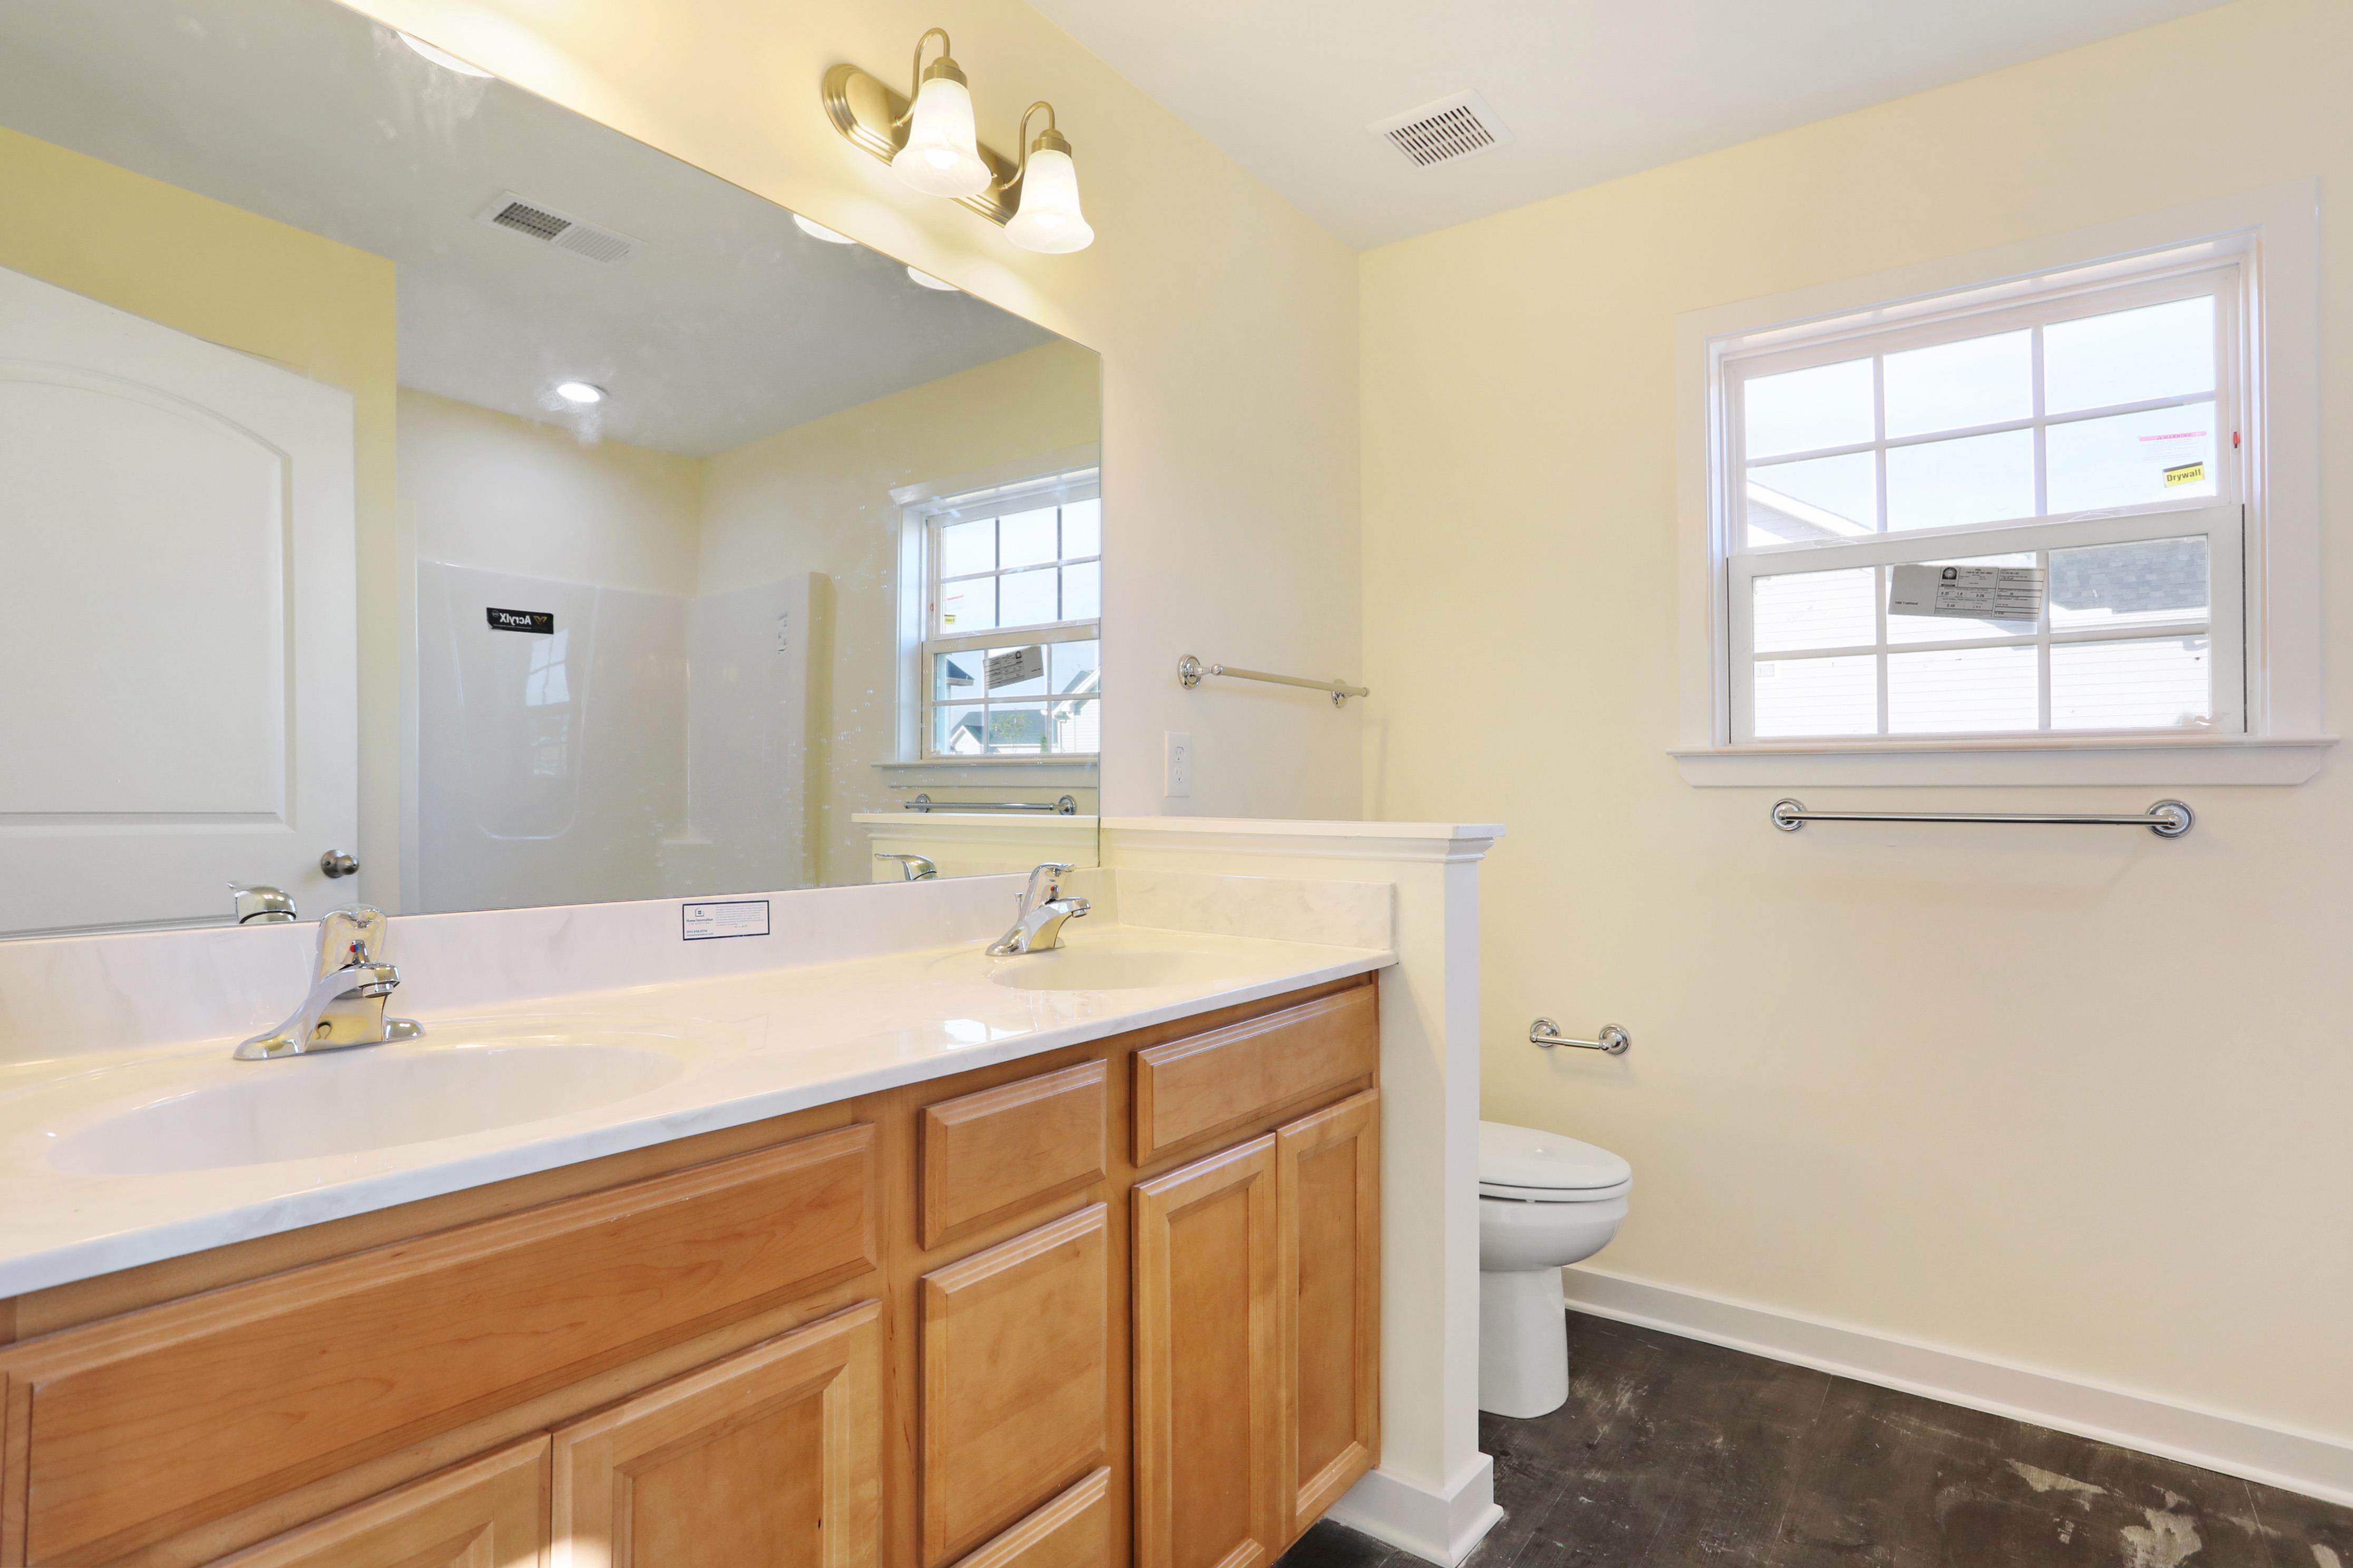 Bathroom featured in The Morgan I By Panhandle Builders in Washington, WV